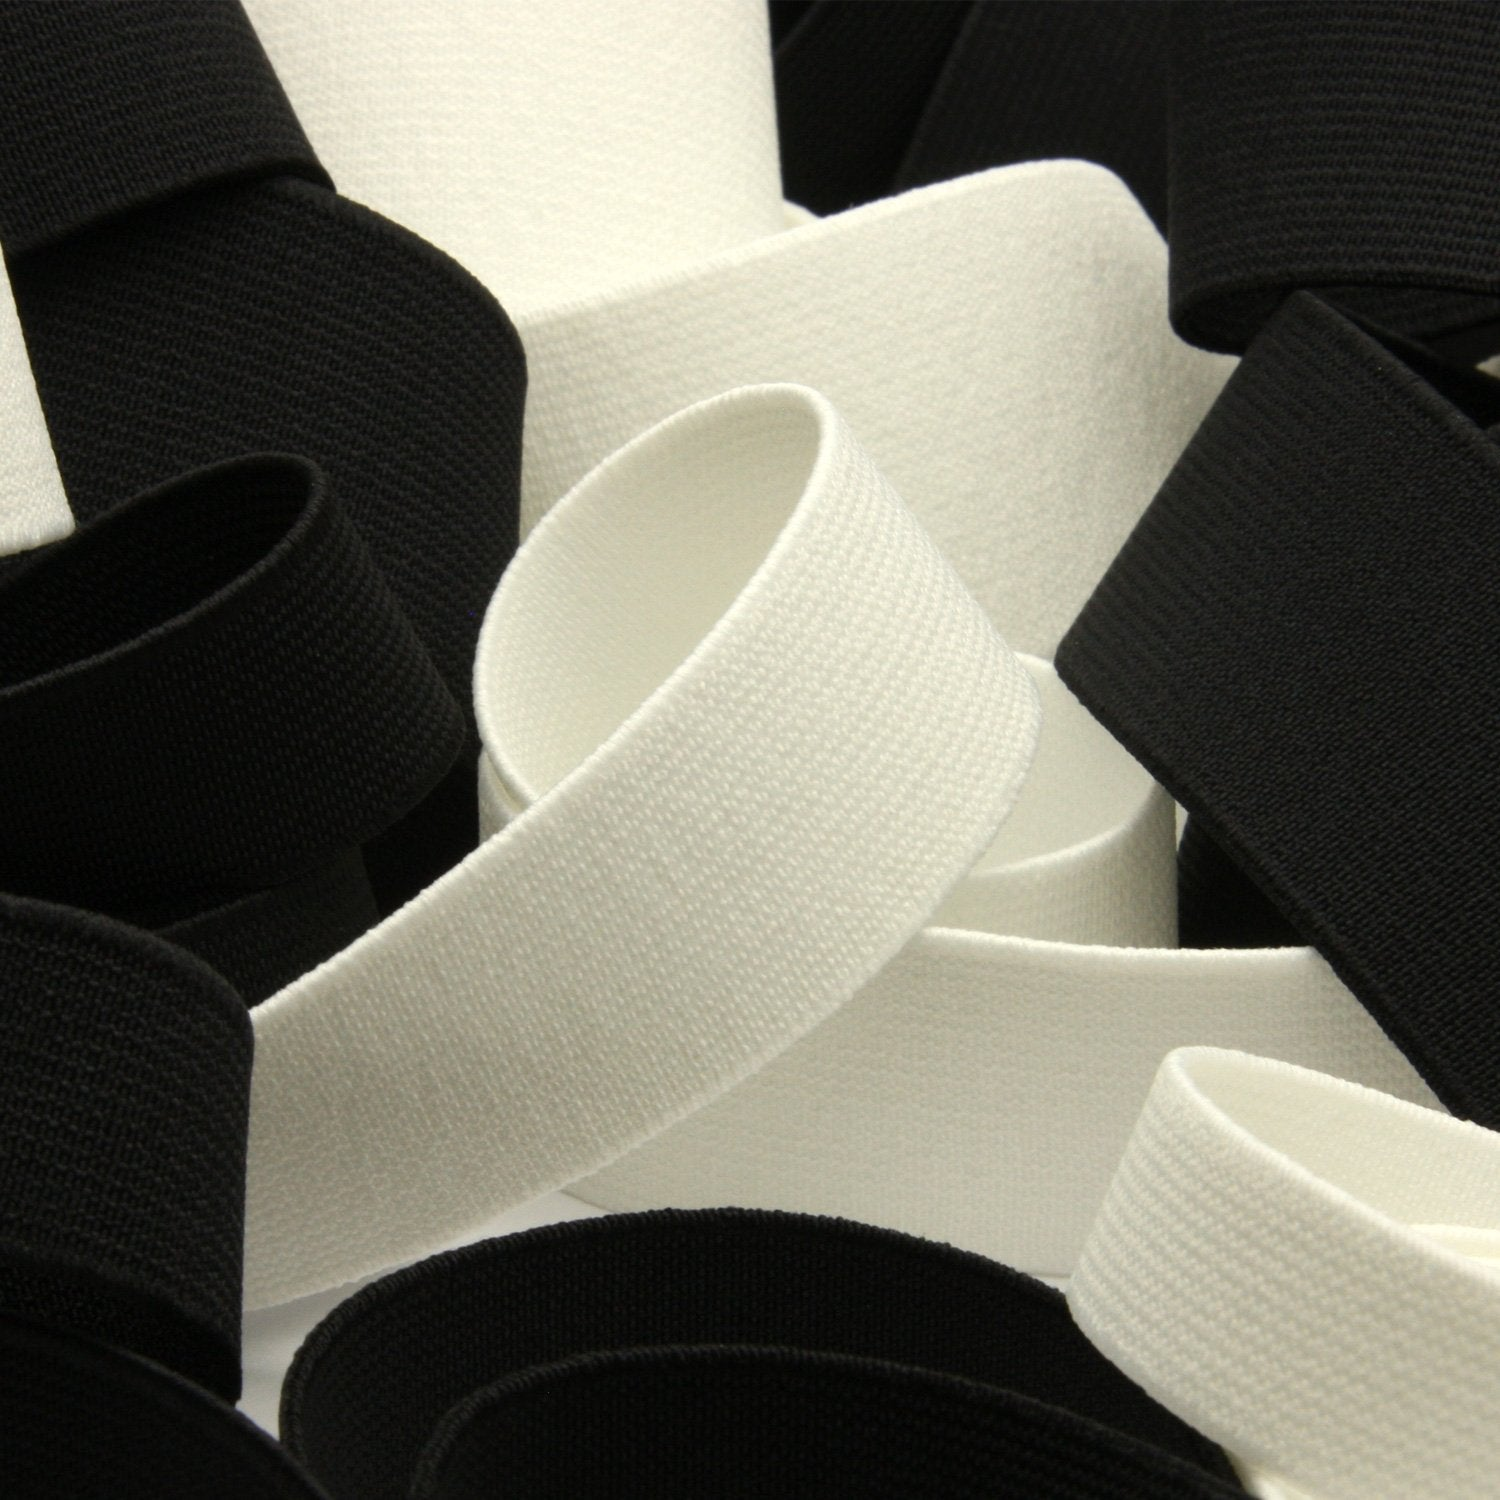 FUJIYAMA RIBBON Hard Type Inside Belt 15mm 9.14 Meters Roll Off White